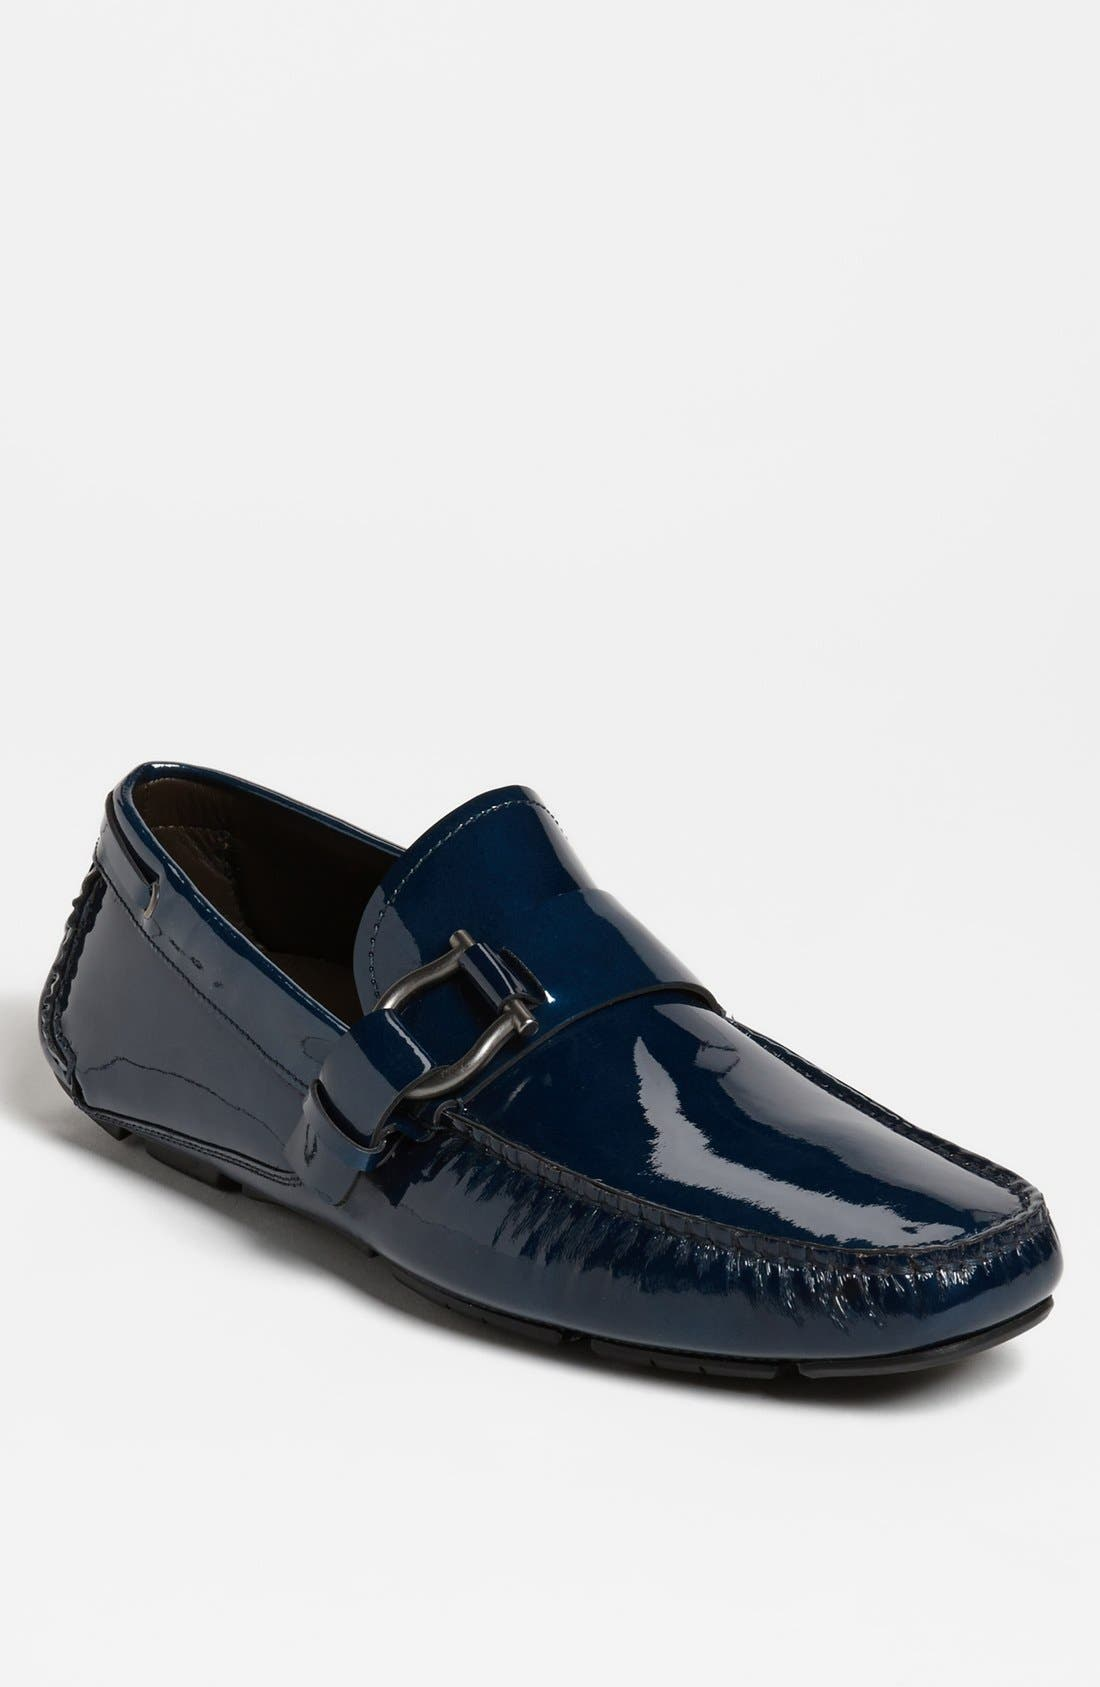 Alternate Image 1 Selected - Salvatore Ferragamo 'Cabo' Driving Shoe